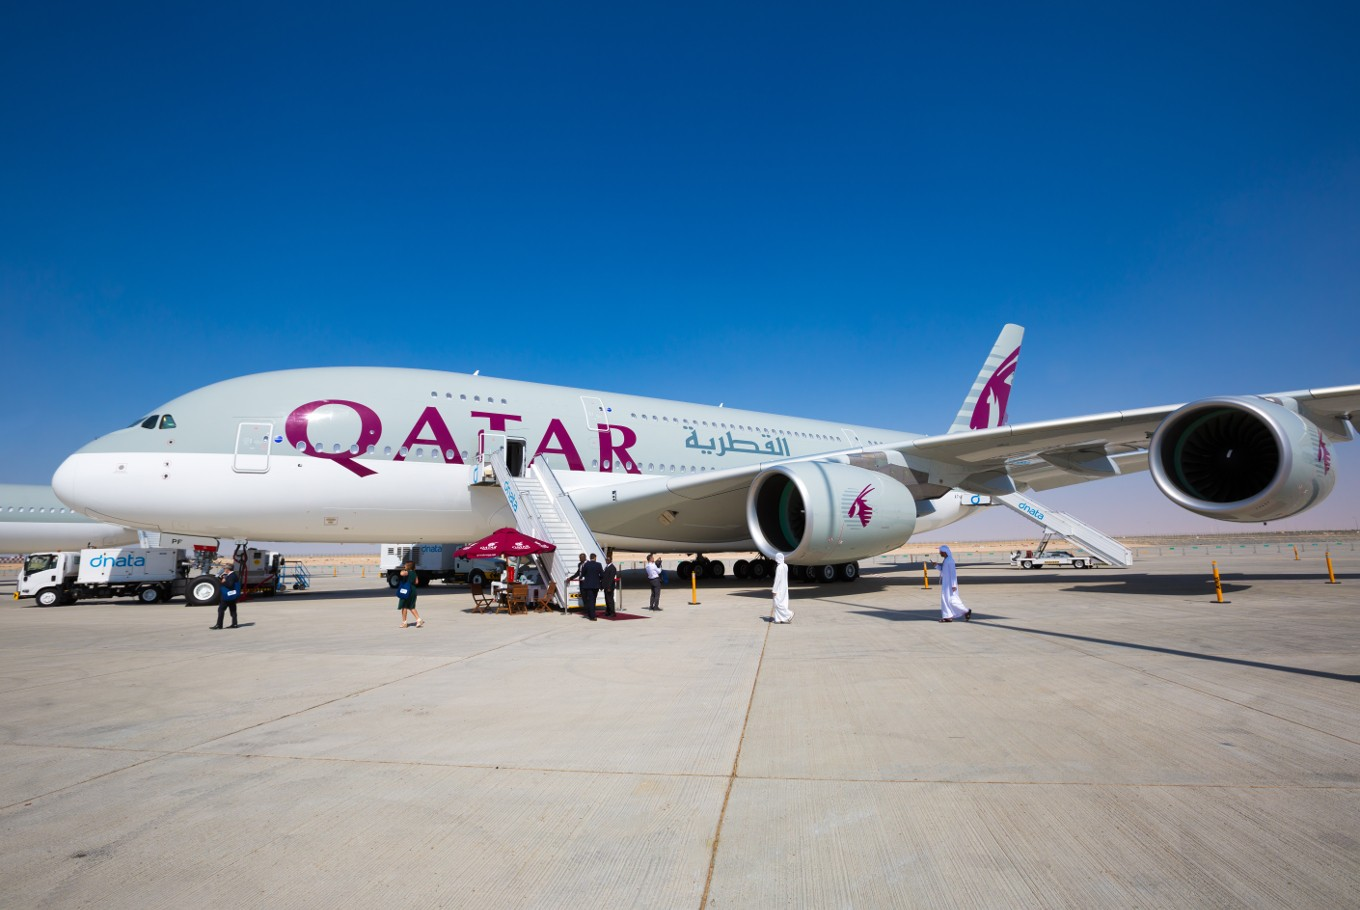 Qatar Airways cabin crew to wear protective suits; face masks mandatory for passengers